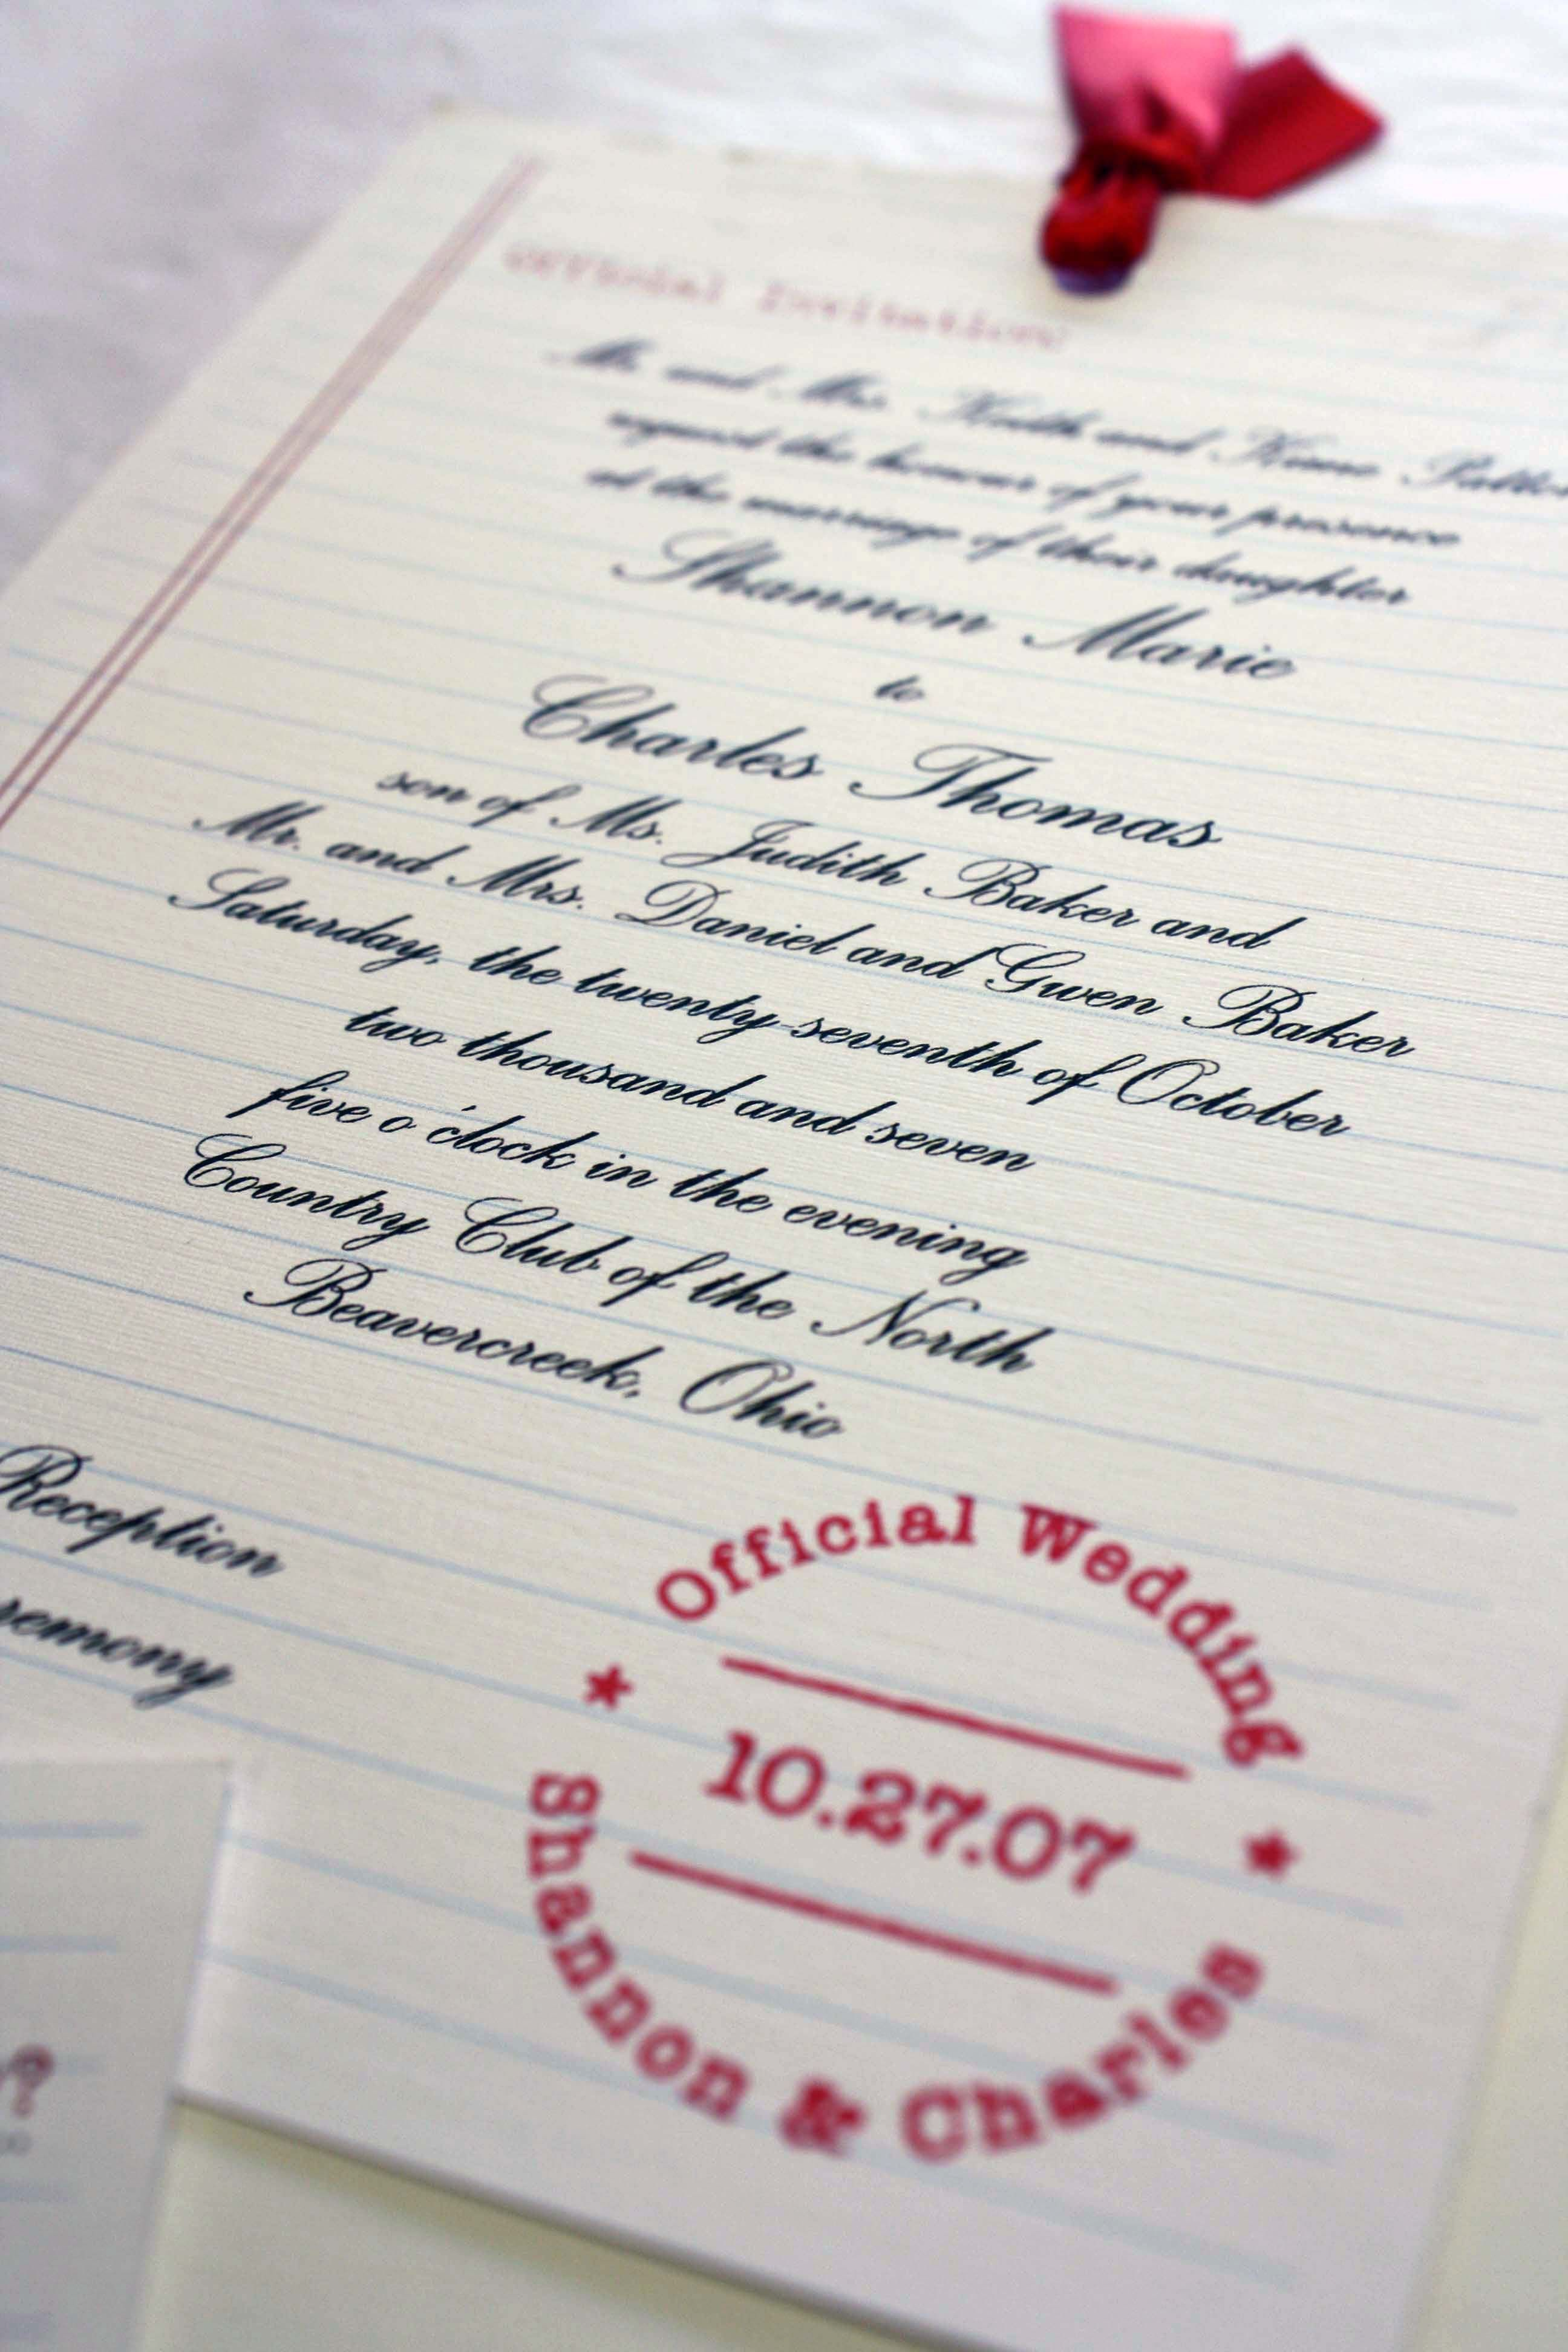 School days wedding invitation, ruled paper, red ink stamp | Custom ...